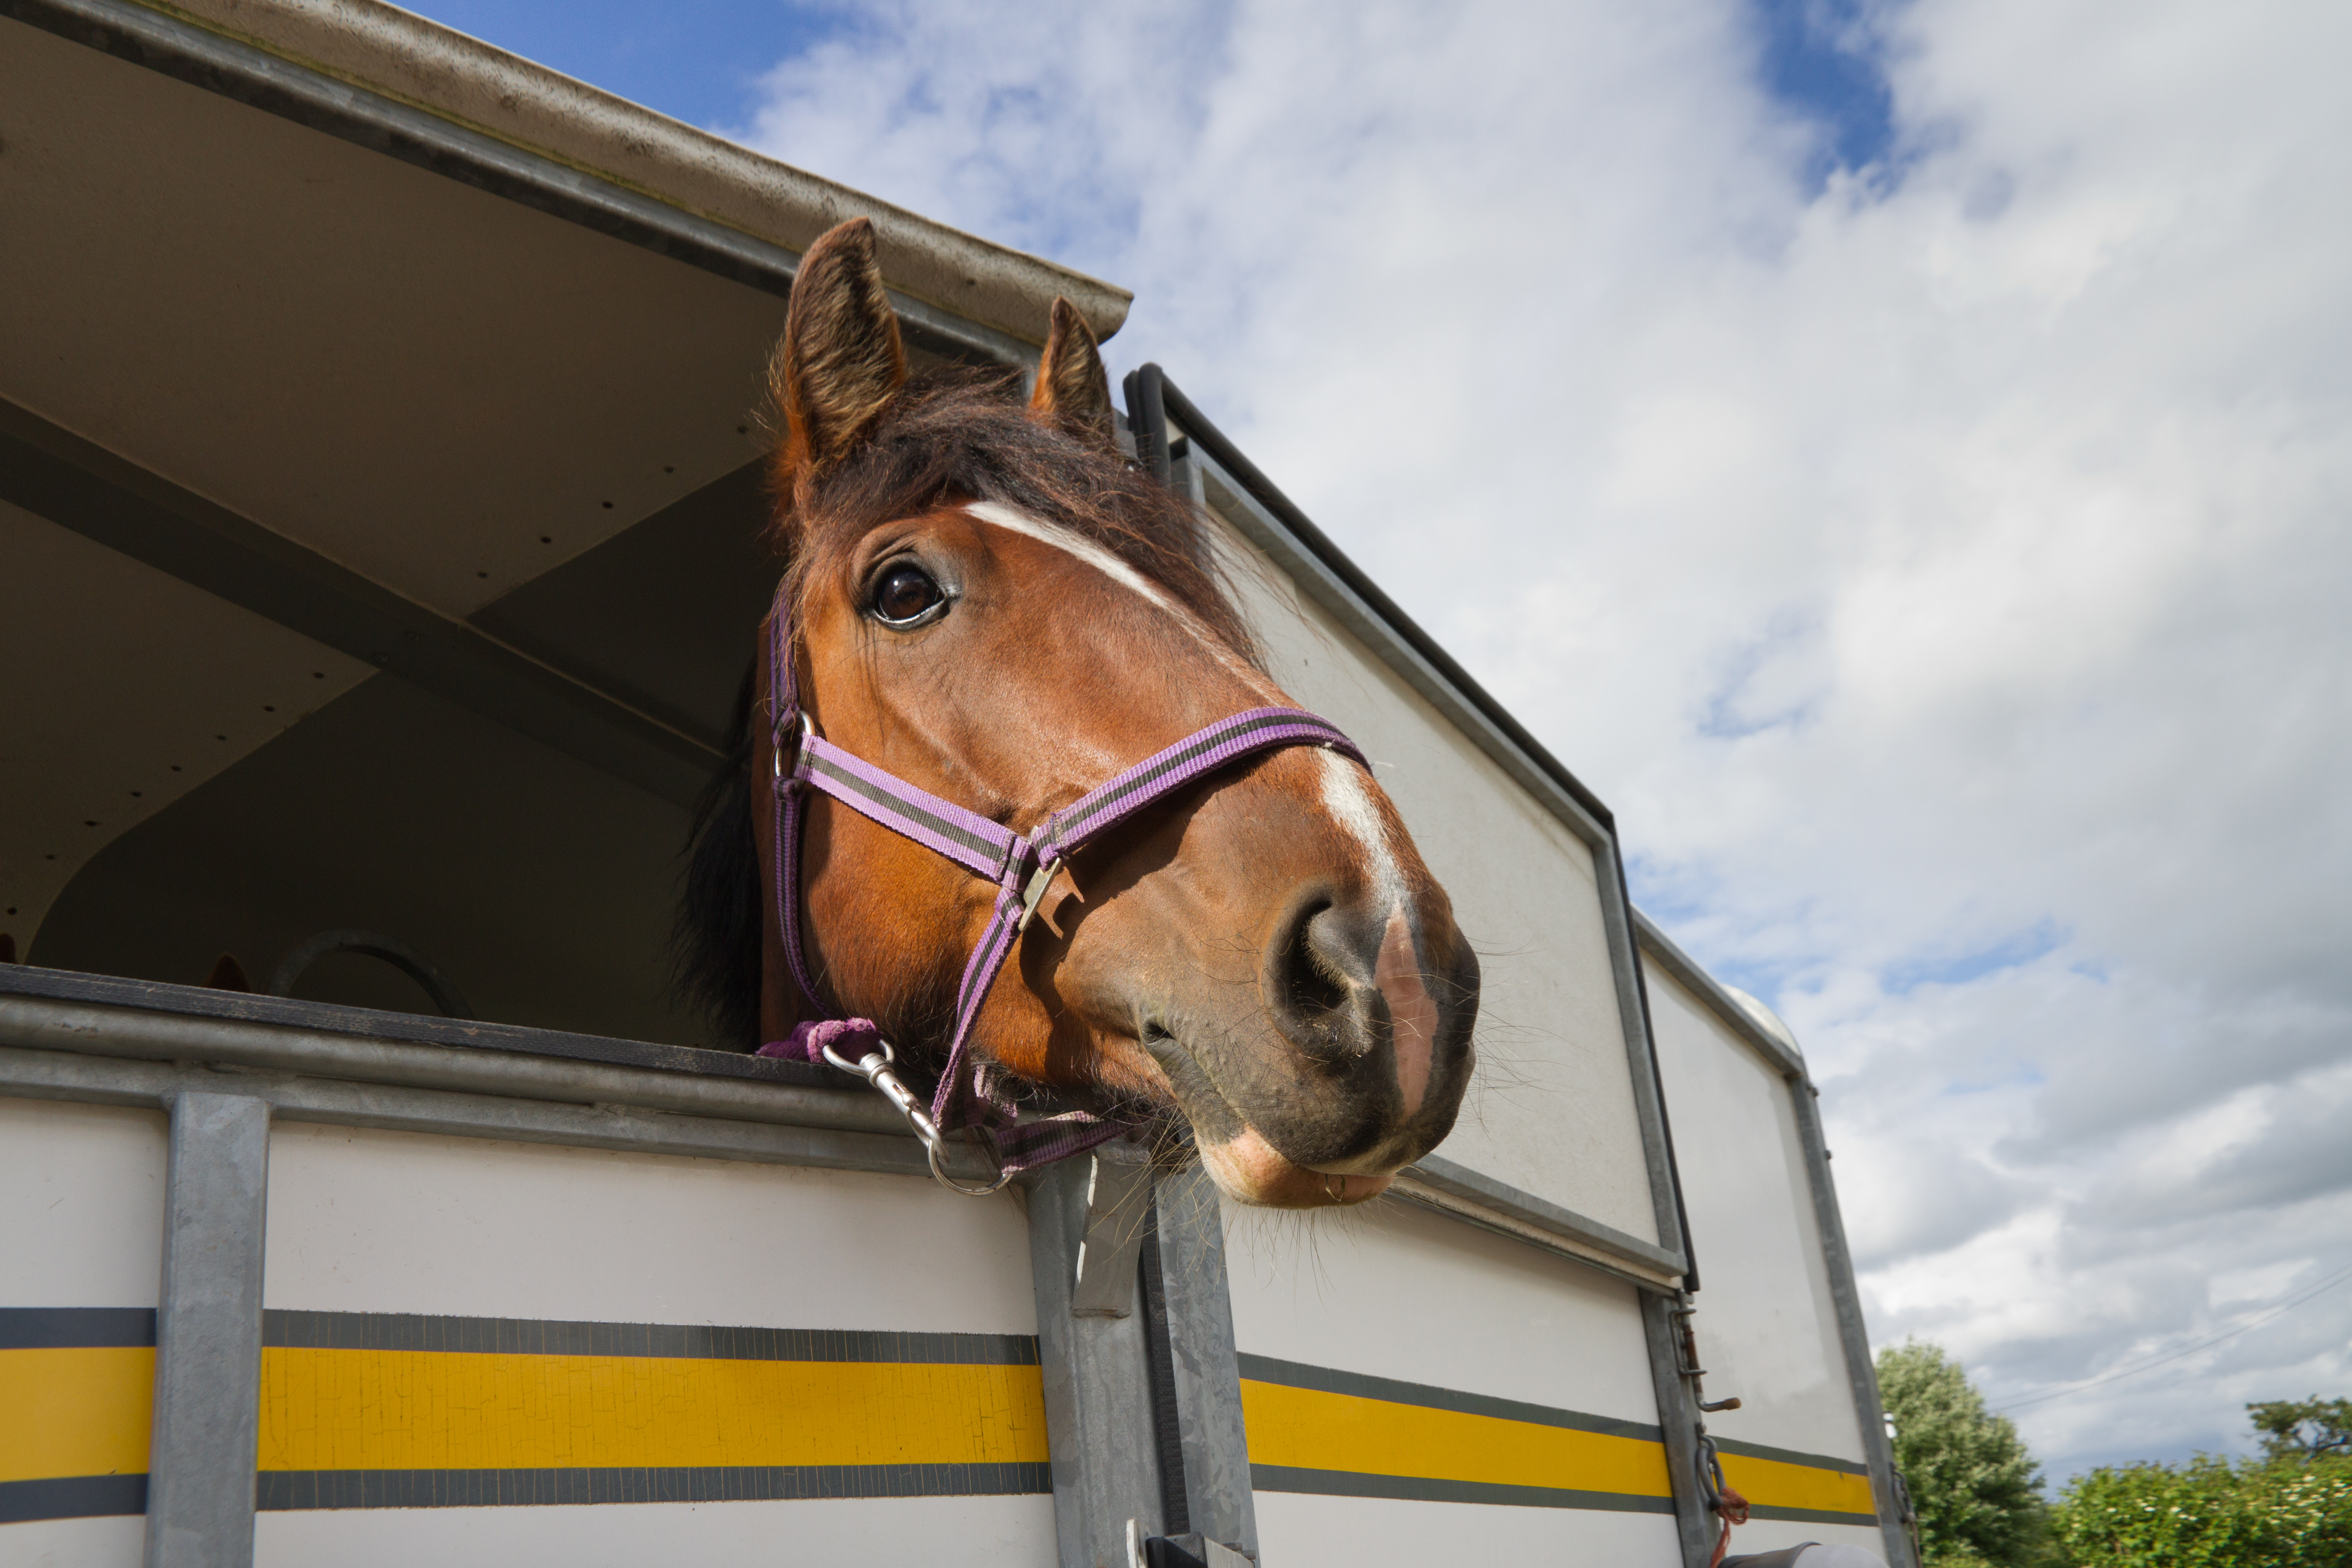 Equine Ulcers 101: Tips on How to Treat and Prevent Ulcers in Horses